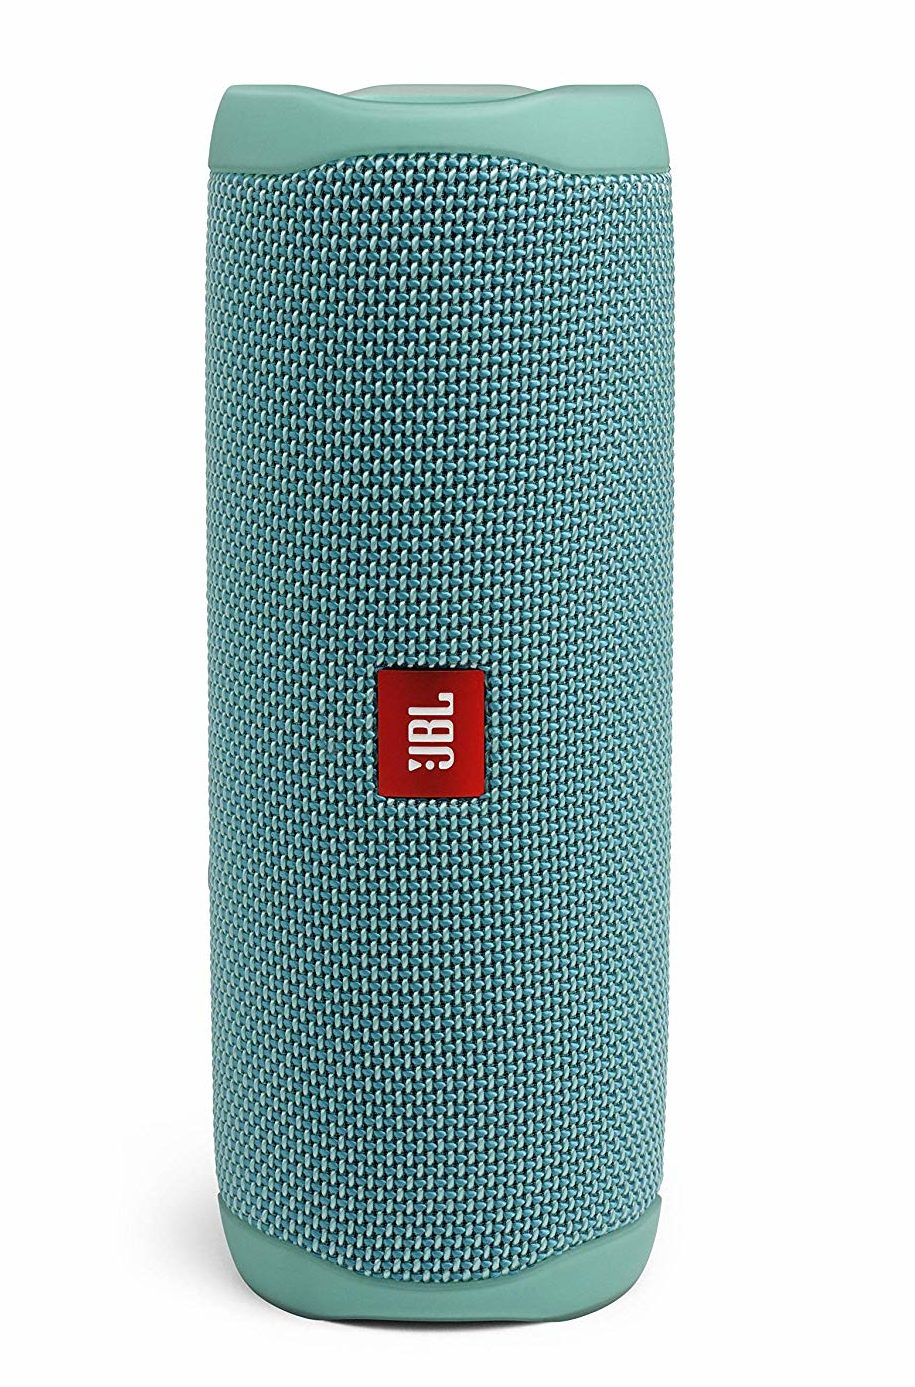 JBL Flip 5 Waterproof Bluetooth Speaker